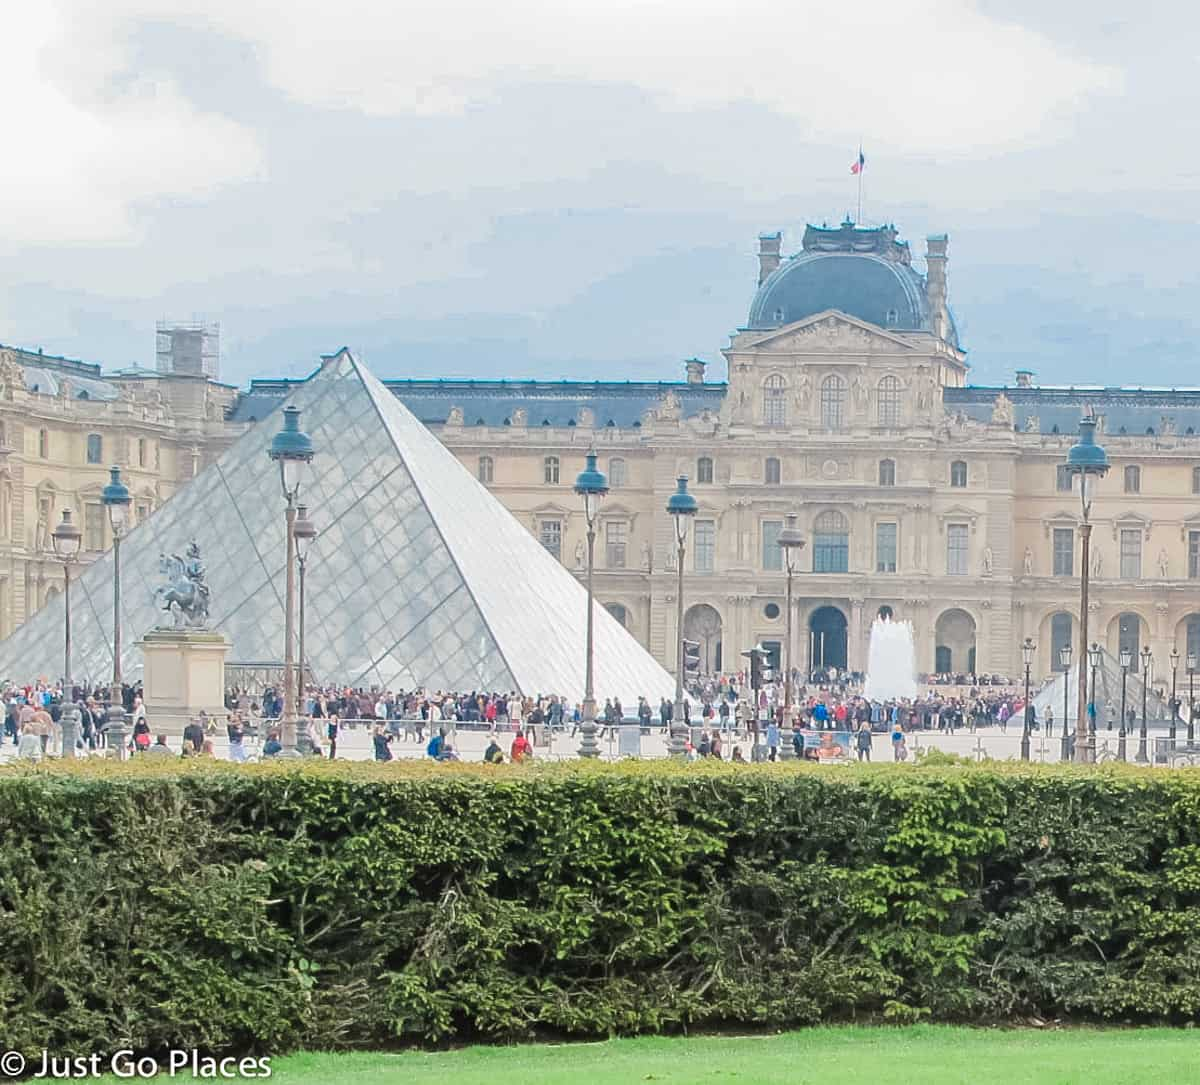 the famous glass pyramid in front of the Louvre Museum and people milling